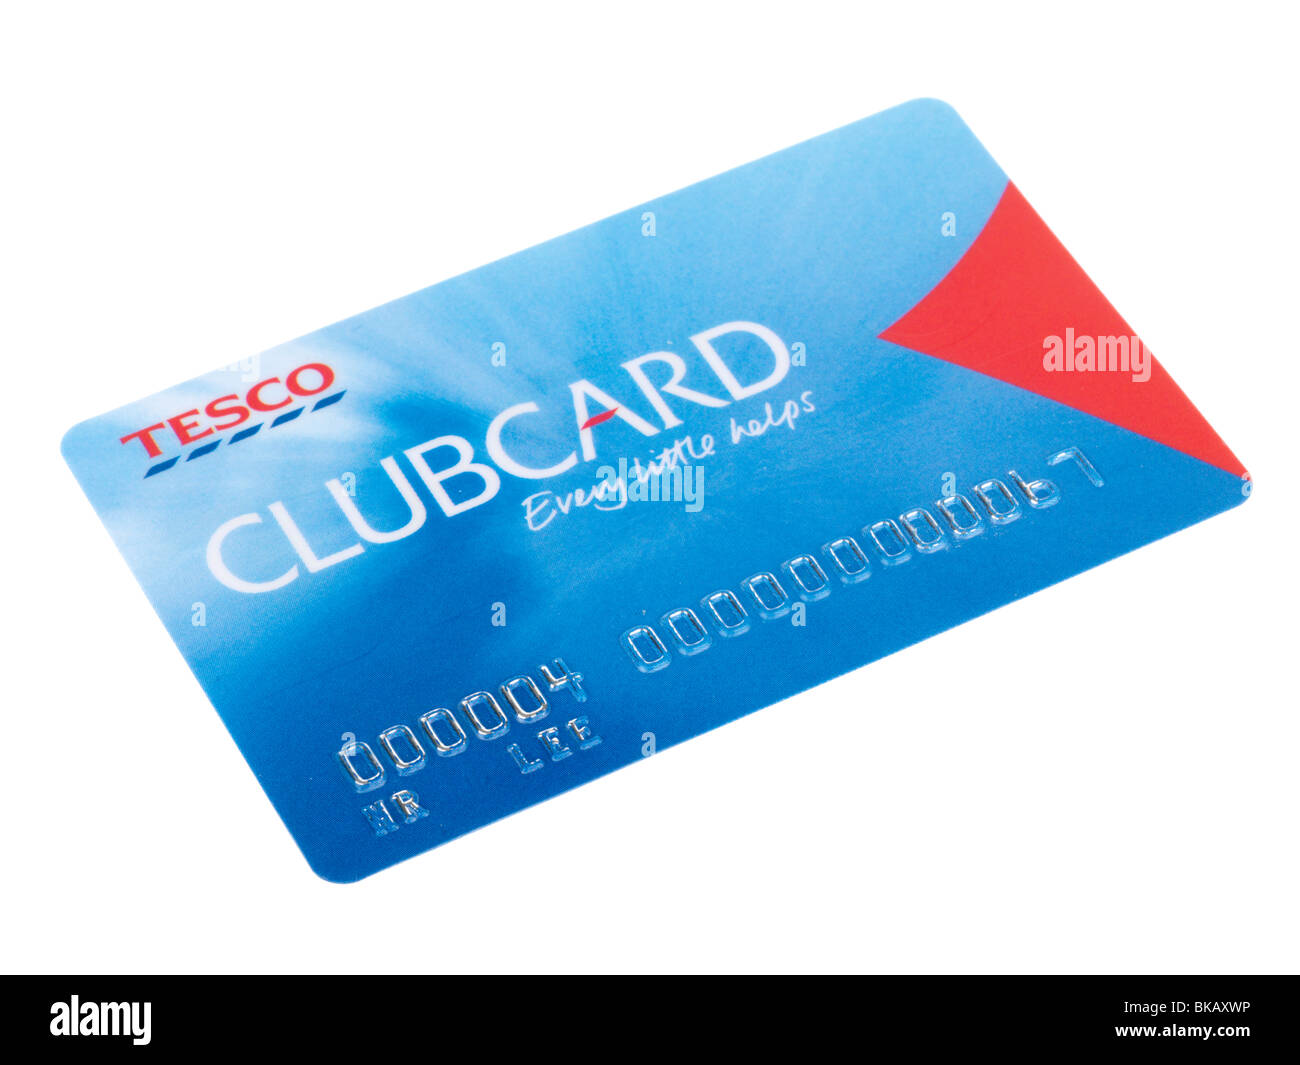 Tesco Card Stock Photos & Tesco Card Stock Images - Alamy